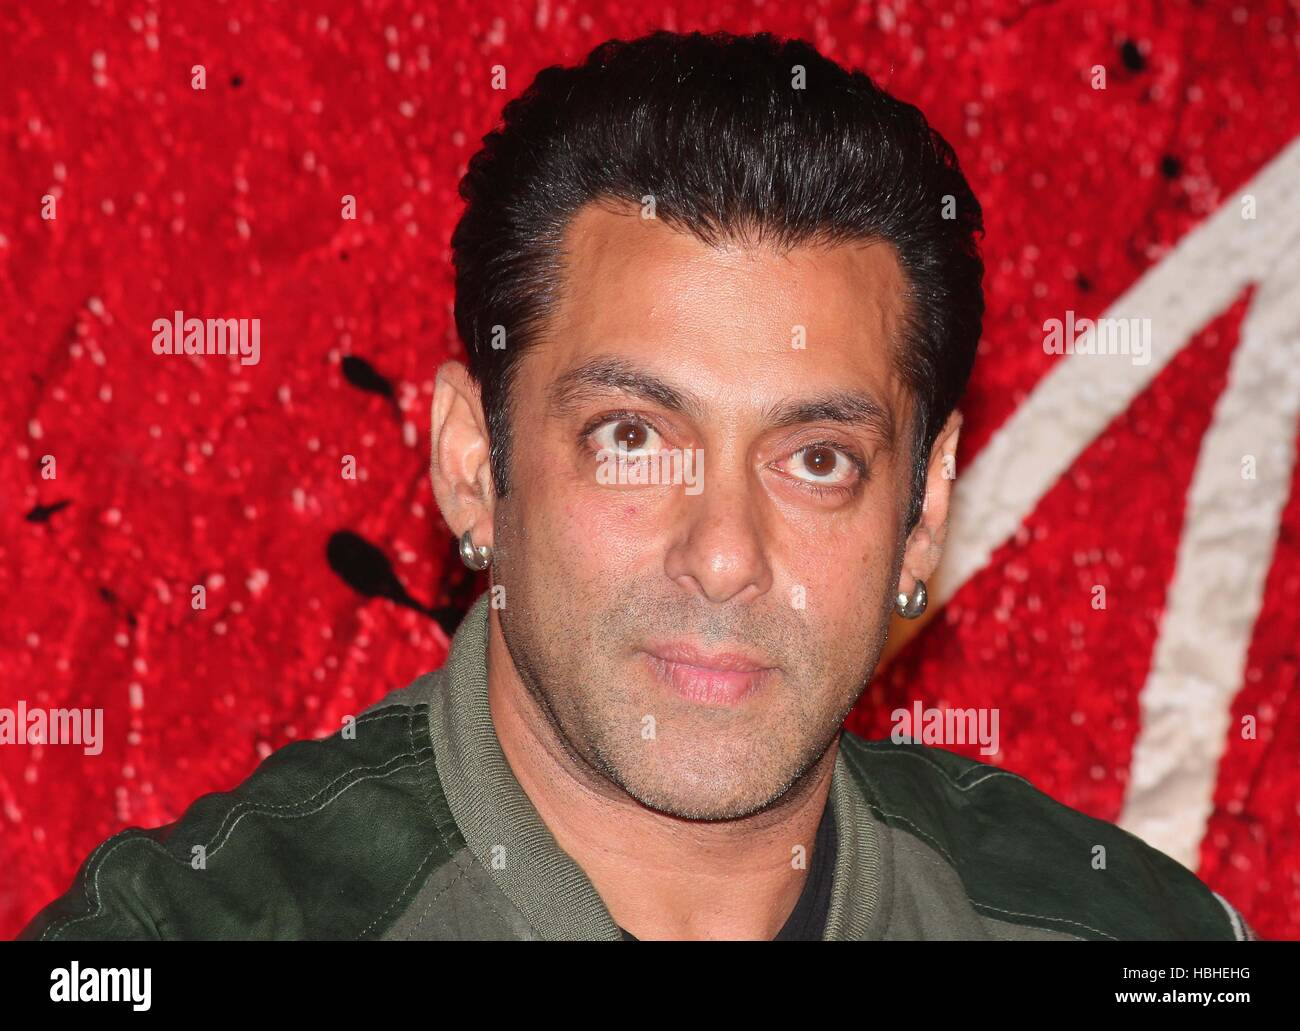 Salman Khan Stock Photos Salman Khan Stock Images Alamy